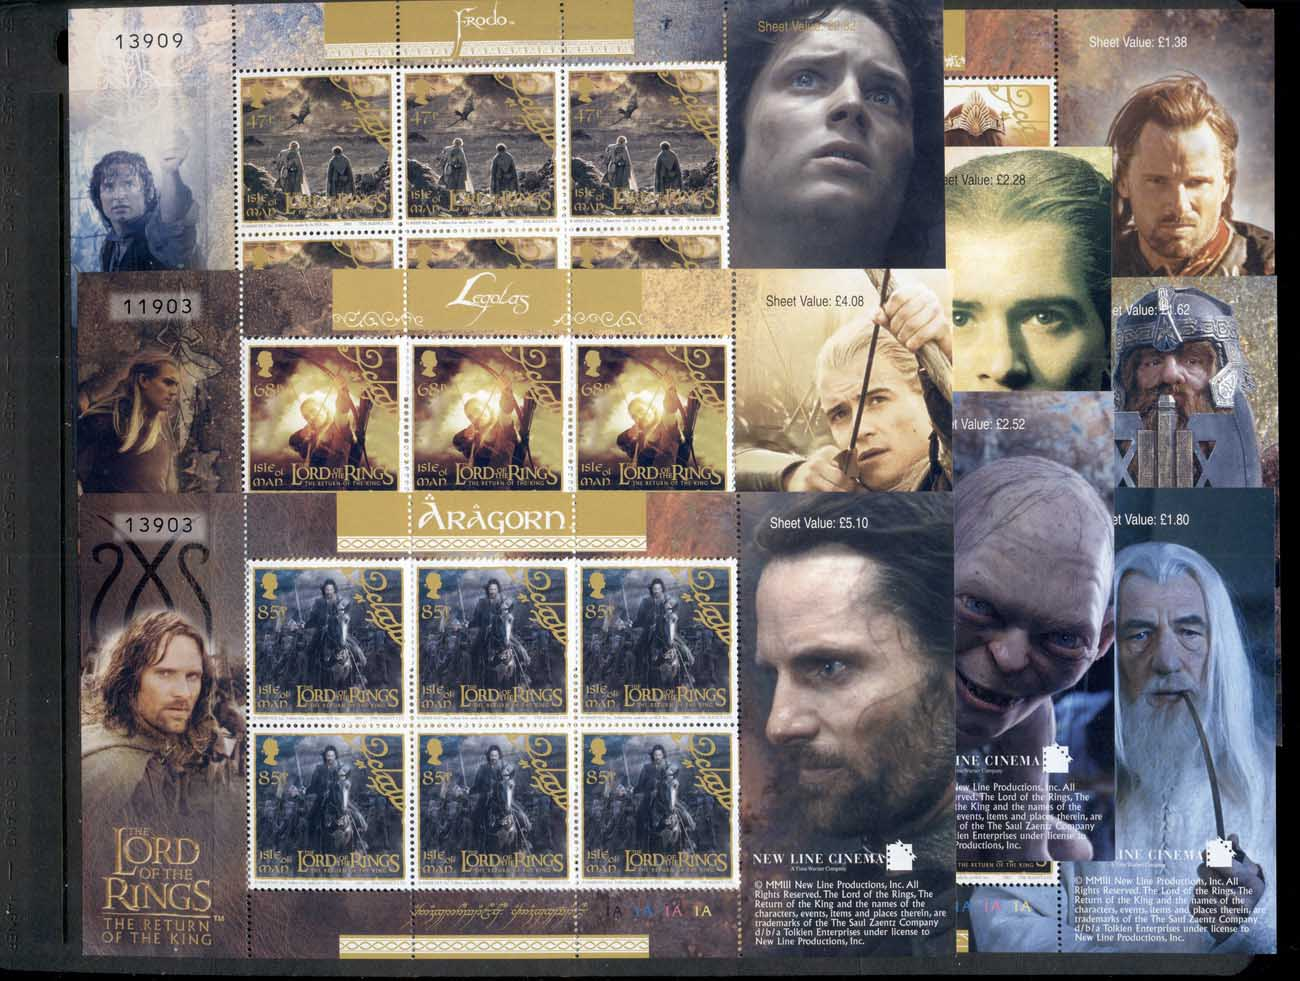 Isle of Man 2003 Lord of the Rings, LOTR , Return of the King 8xsheetlets MUH